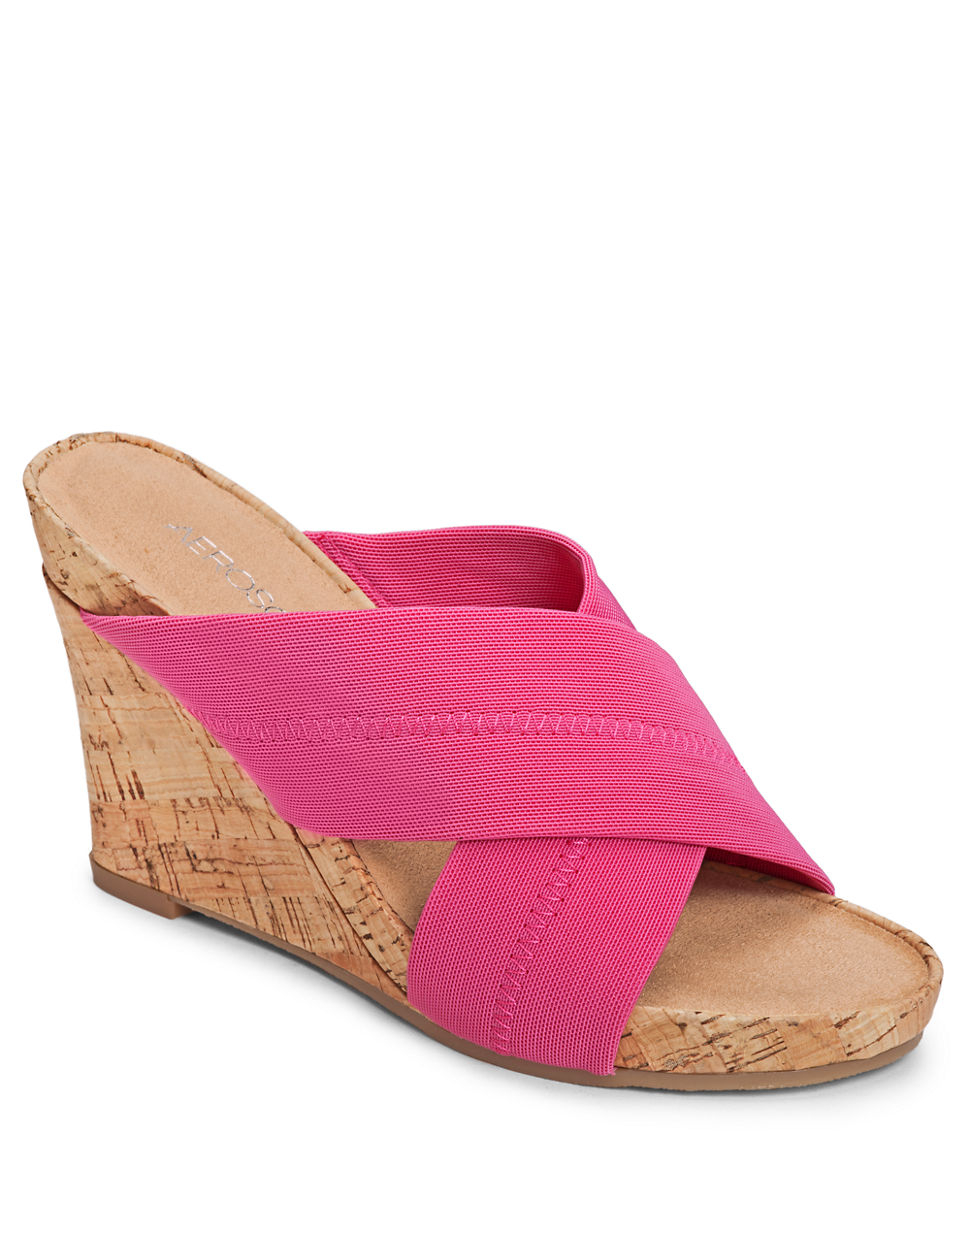 b6b6314f41f986 Aerosoles Party Plush Wedge Sandals in Pink - Lyst